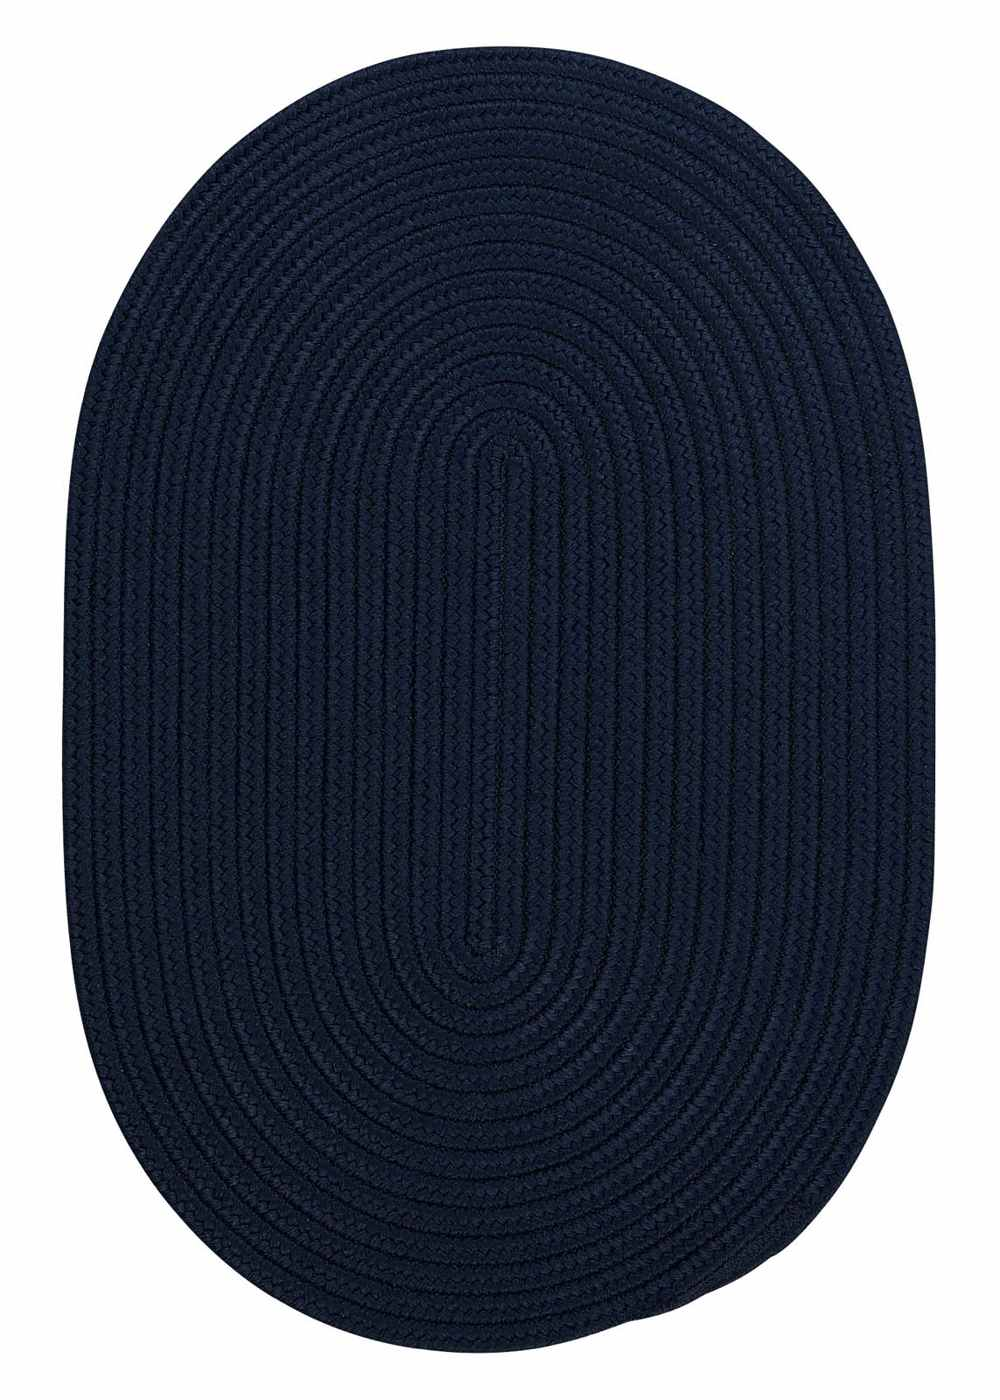 Super Area Rugs 2ft. x 8ft. Oval Indoor/Outdoor Reversible Braided Rug Navy Color (2x8) at Sears.com